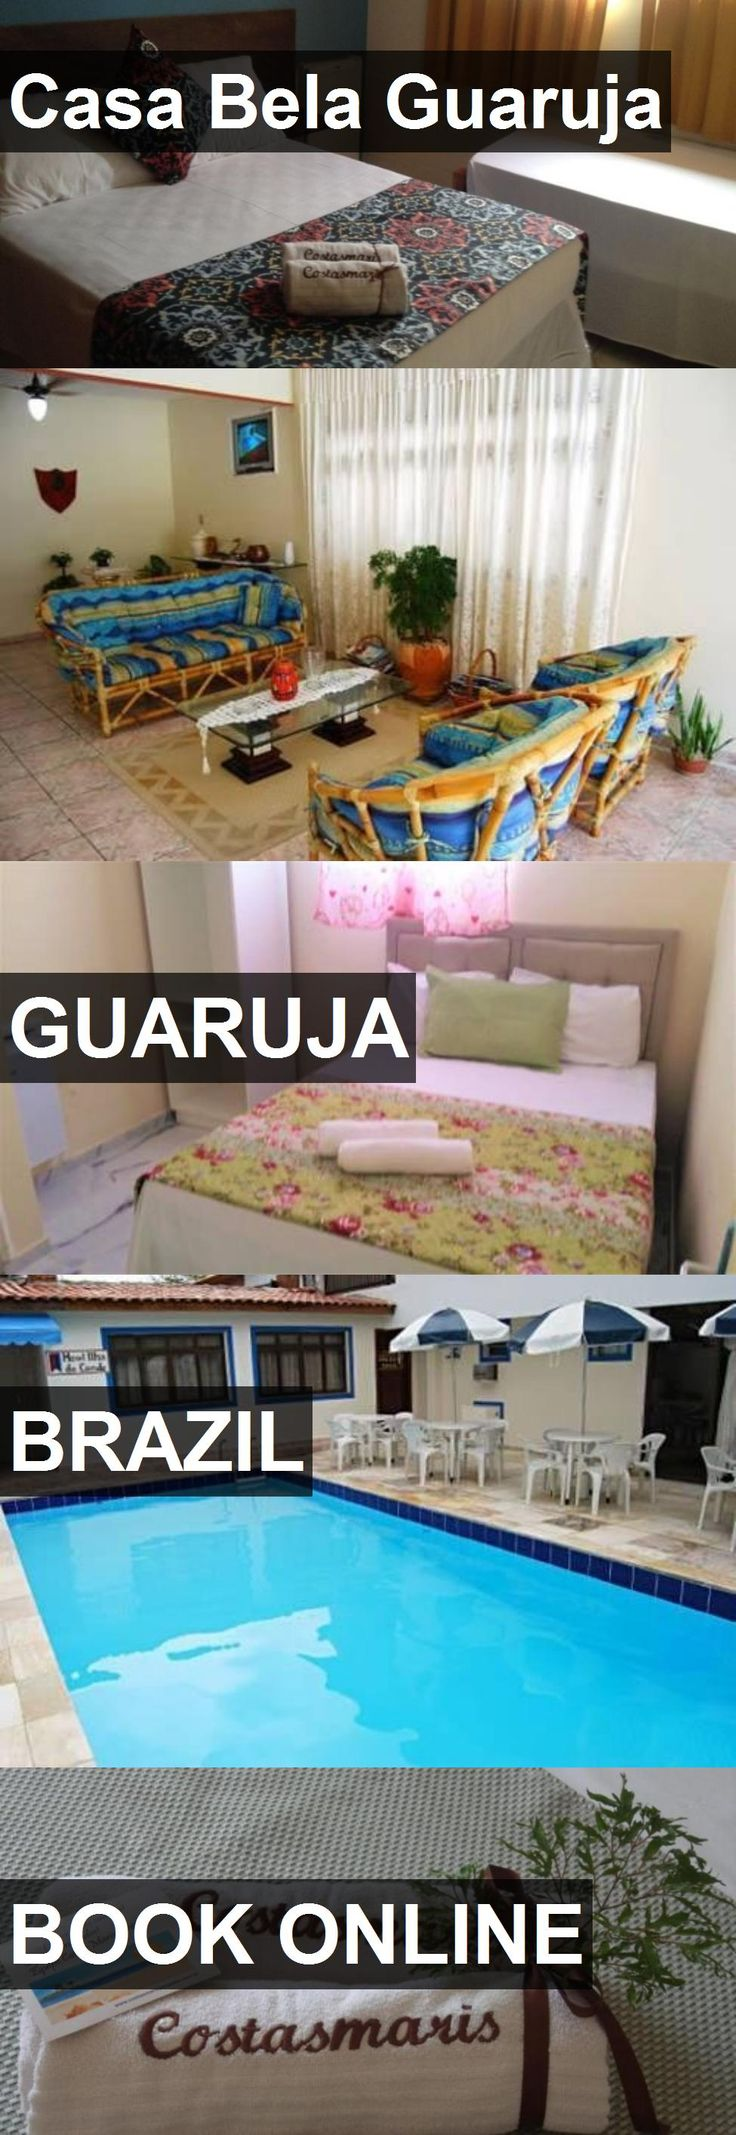 Hotel Casa Bela Guaruja in Guaruja, Brazil. For more information, photos, reviews and best prices please follow the link. #Brazil #Guaruja #CasaBelaGuaruja #hotel #travel #vacation